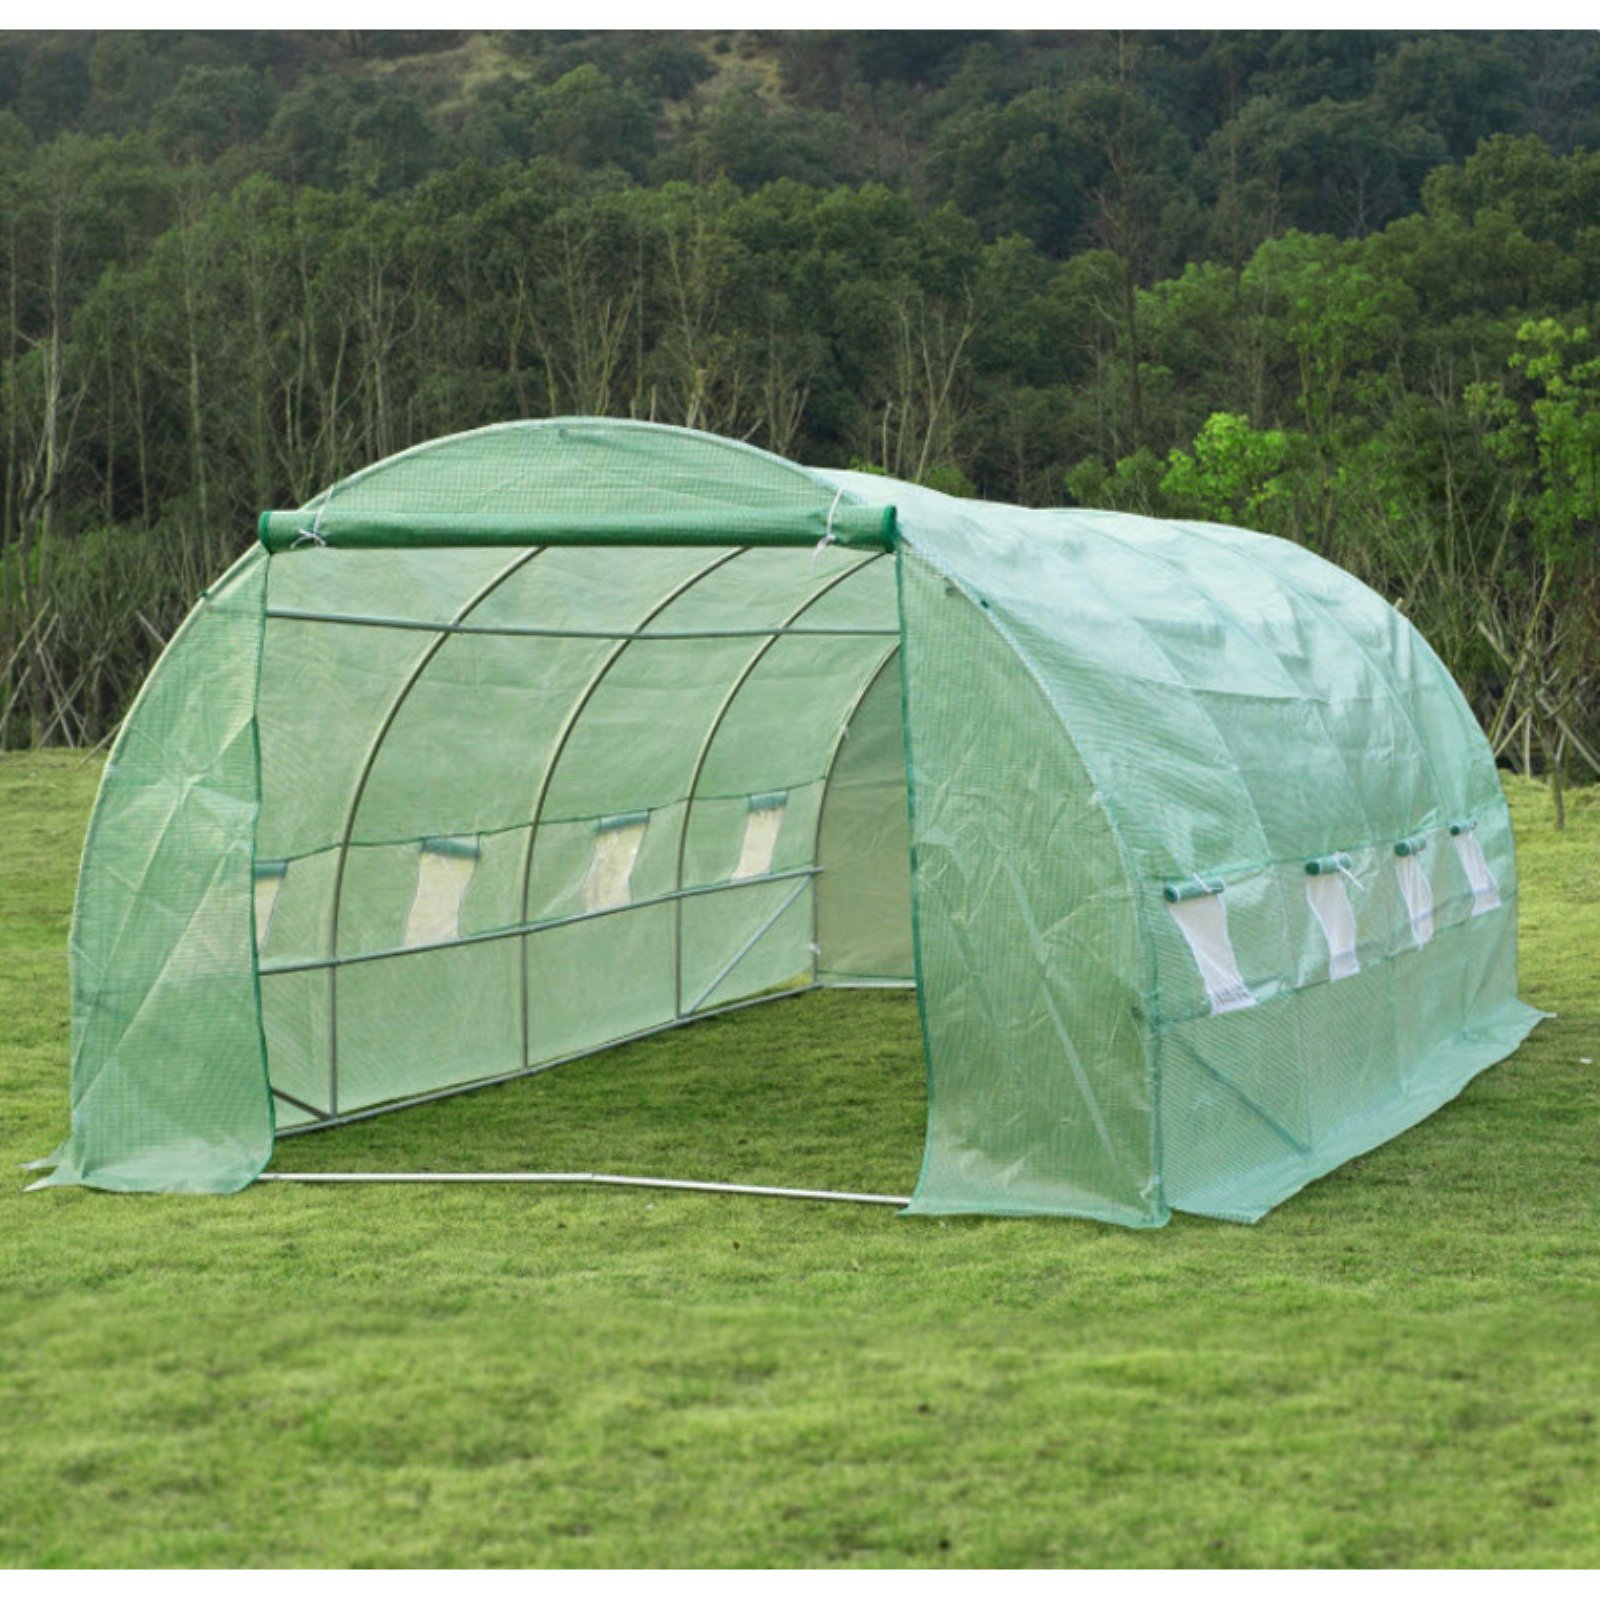 Outsunny Portable 20 x 10 ft. Walk-In Garden Dome Top Greenhouse by Aosom